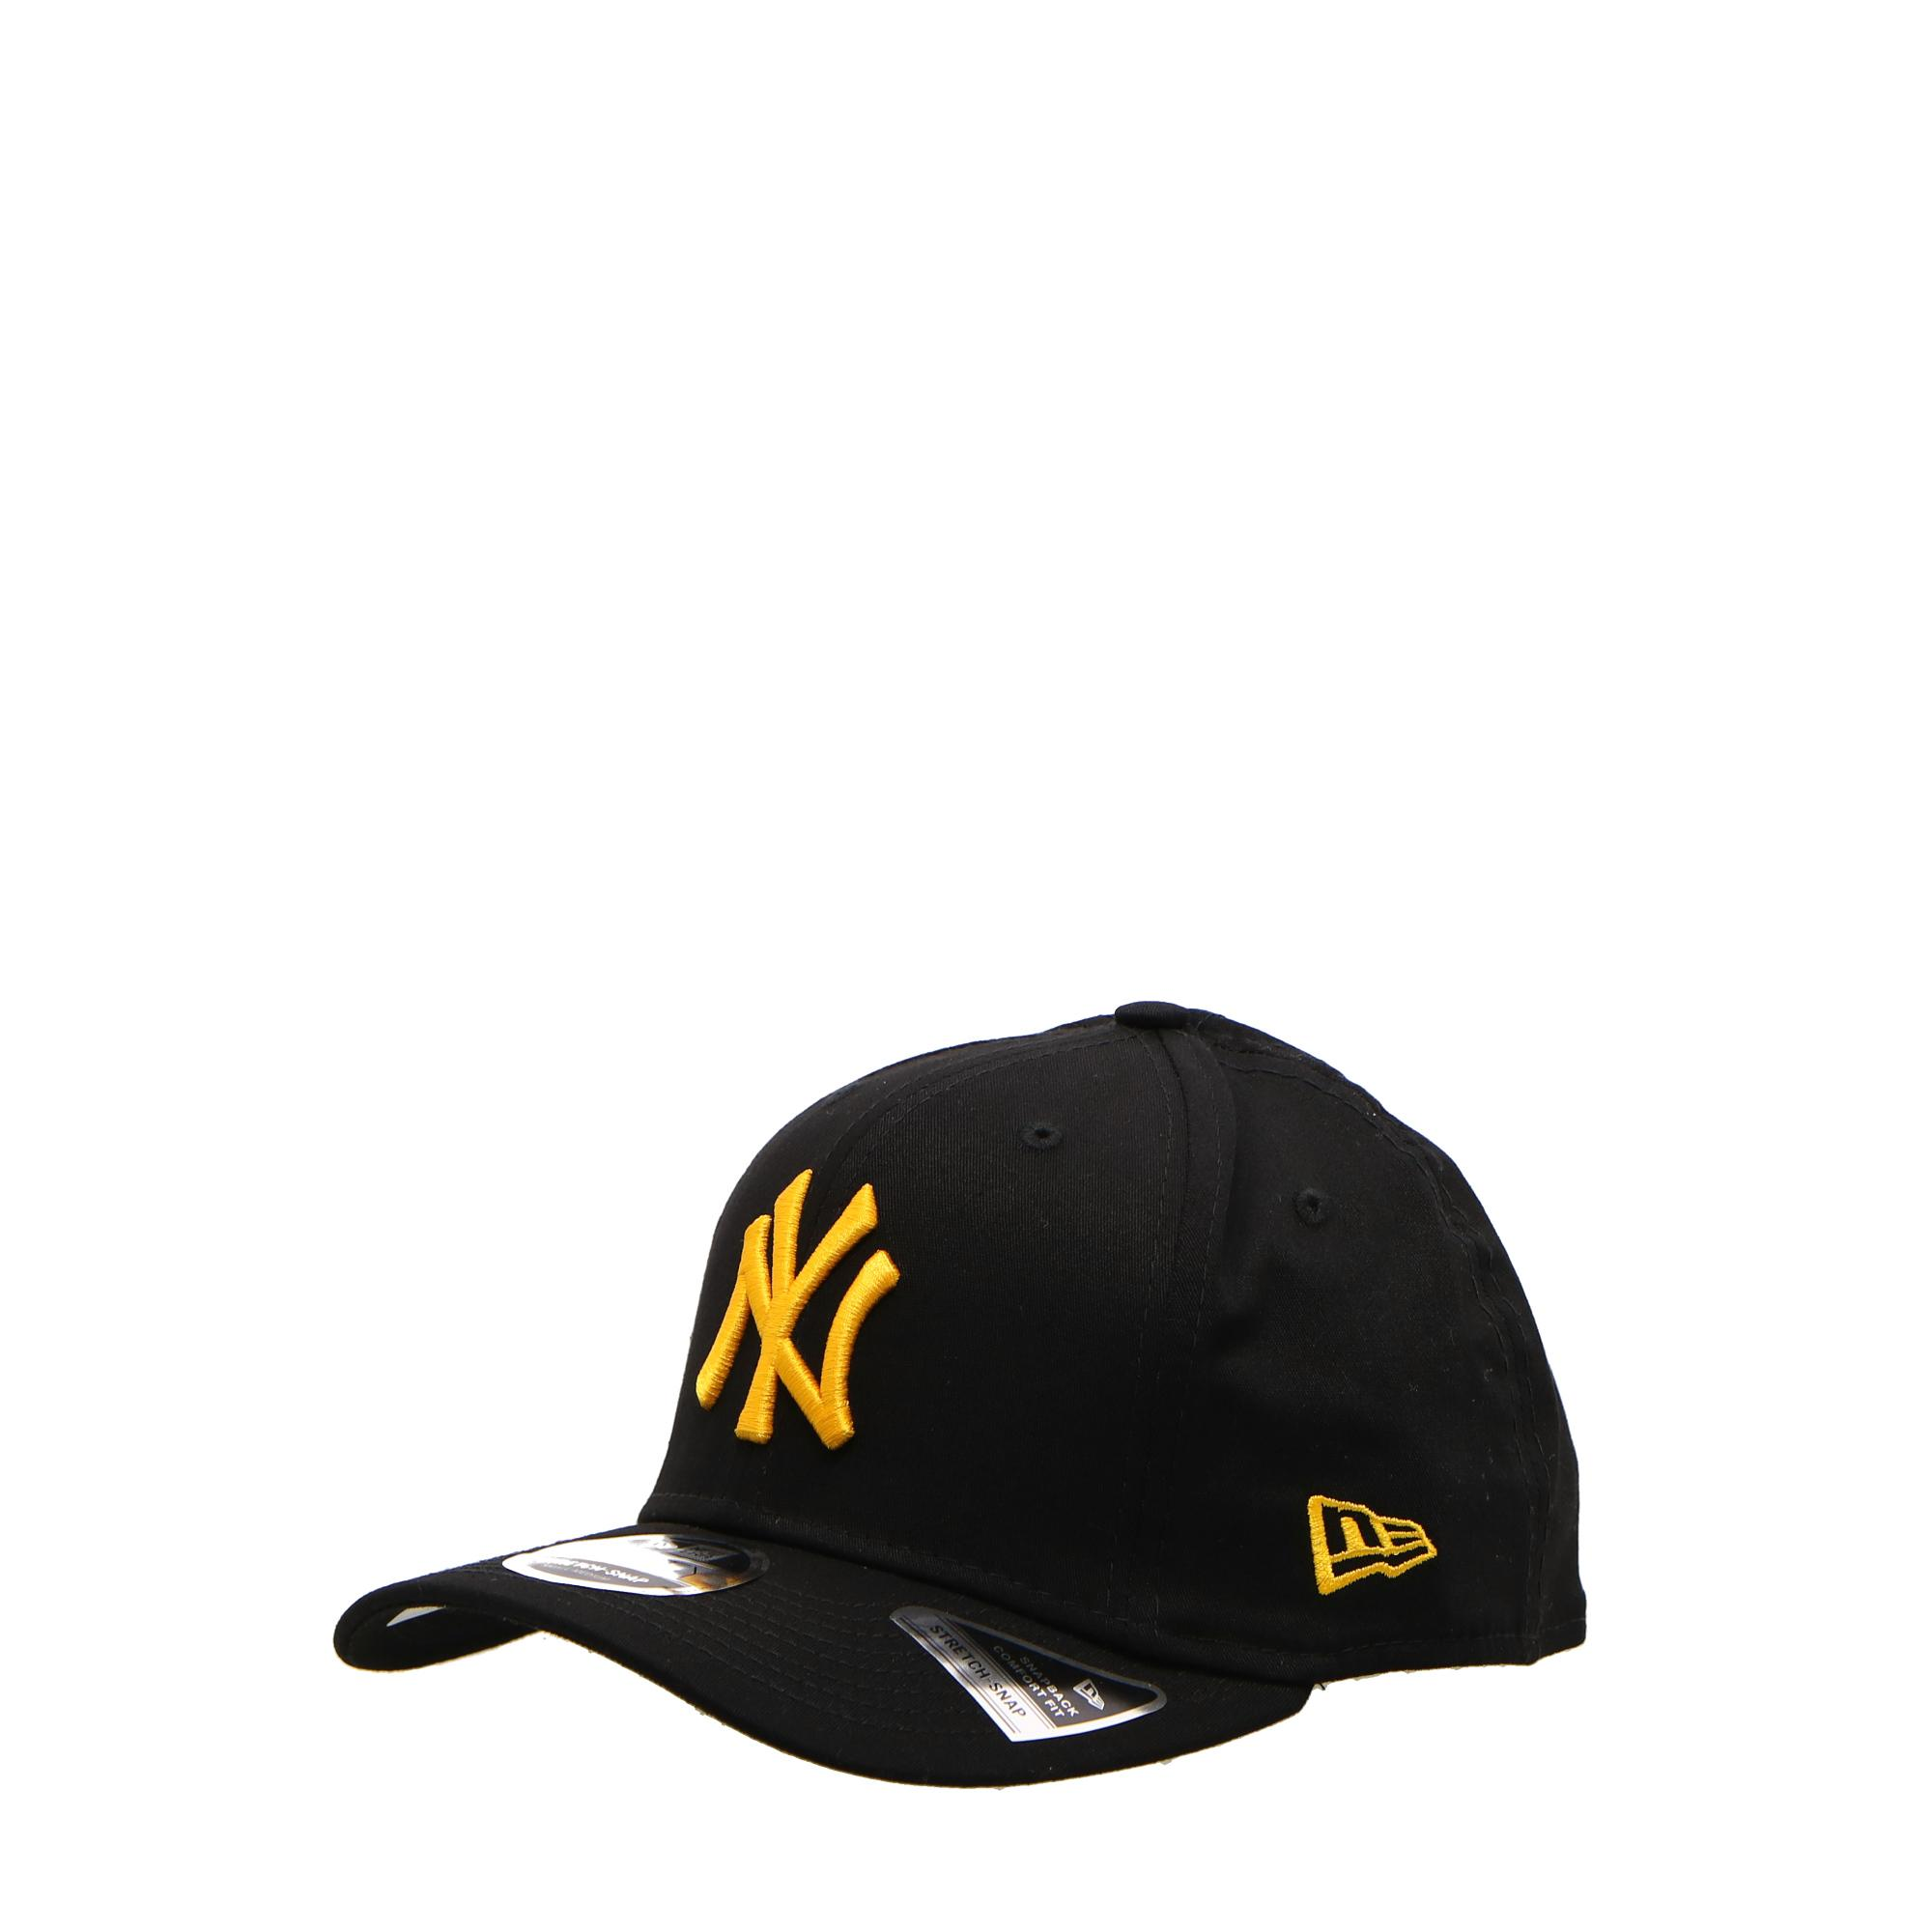 New Era League Essential 9fiftyss Ny Yankees Black gold